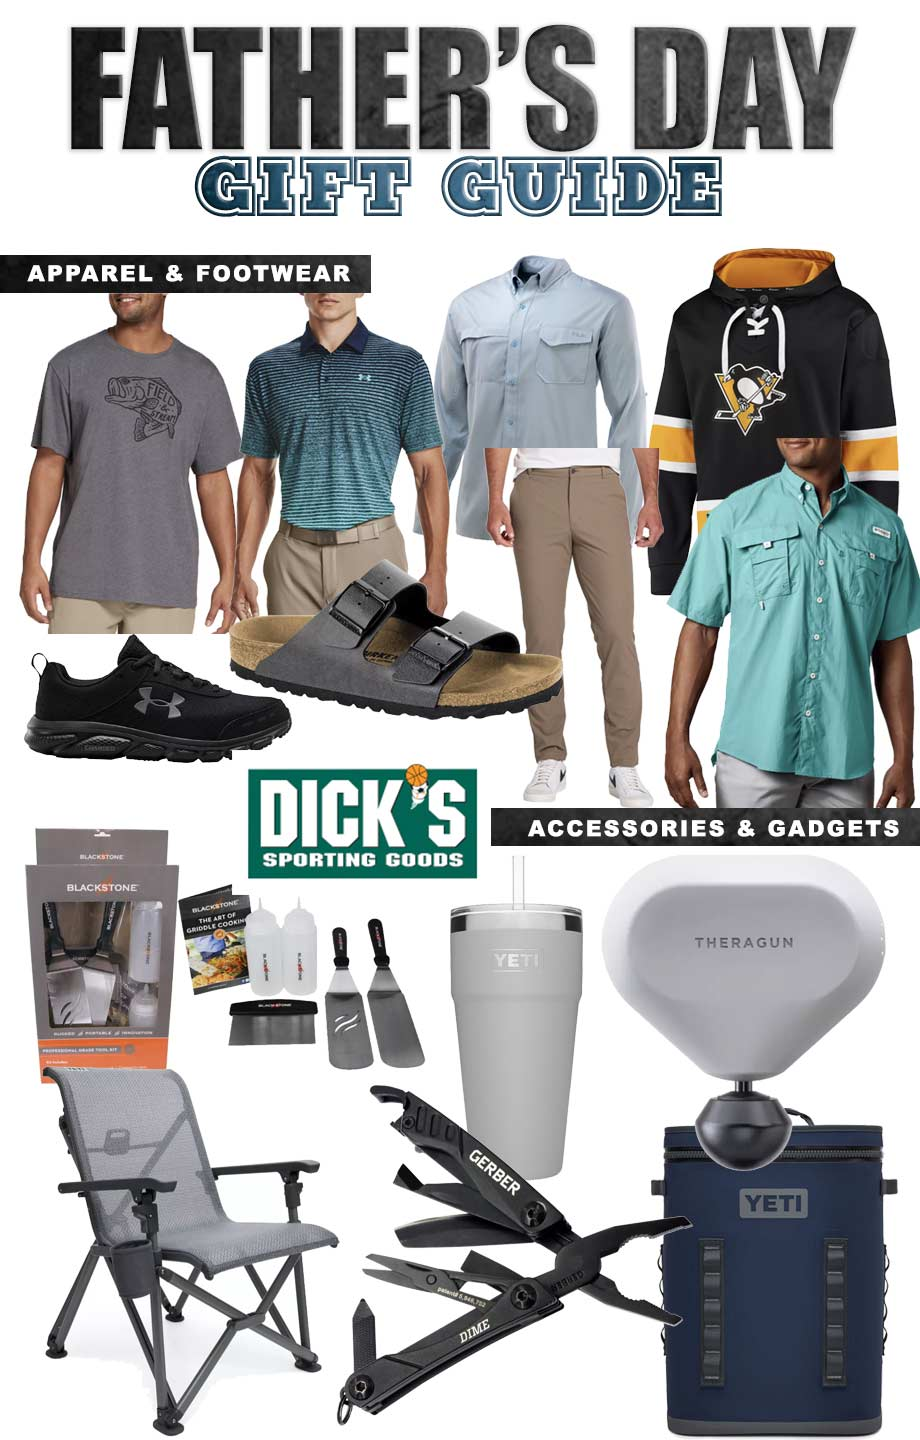 giftguide_fathersday